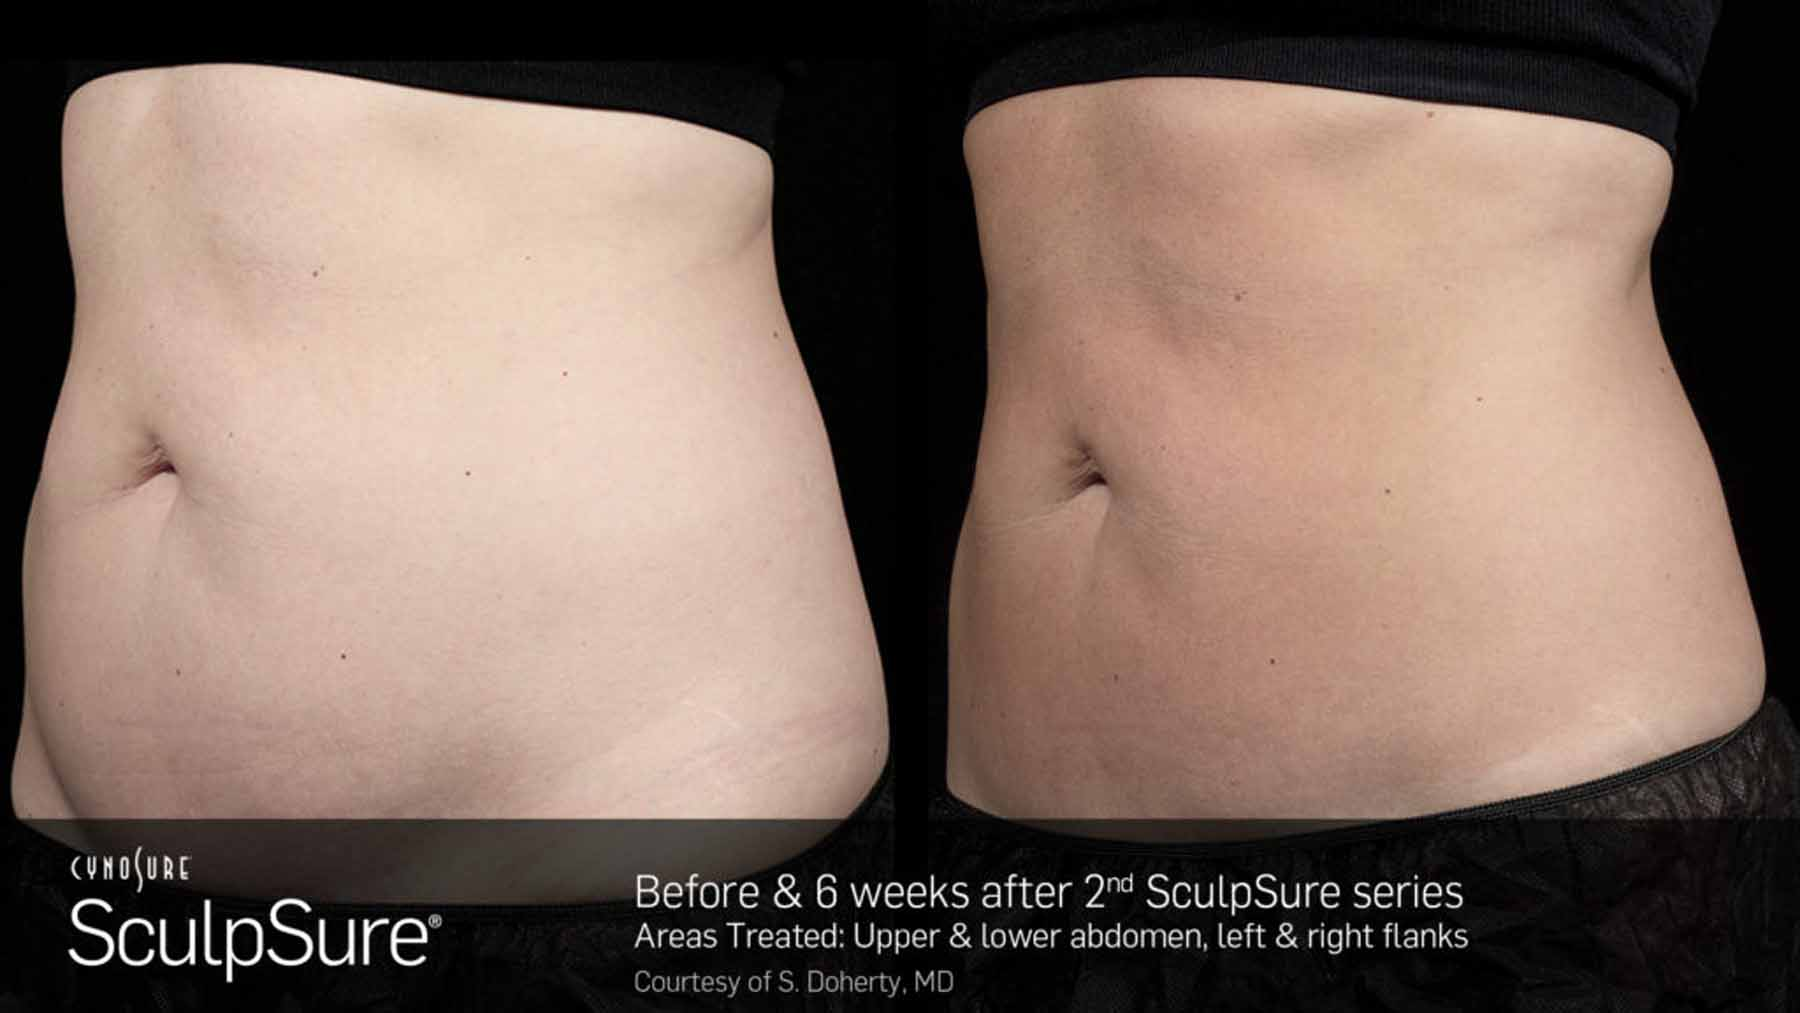 Before and after SculpSure treatment on abdomen